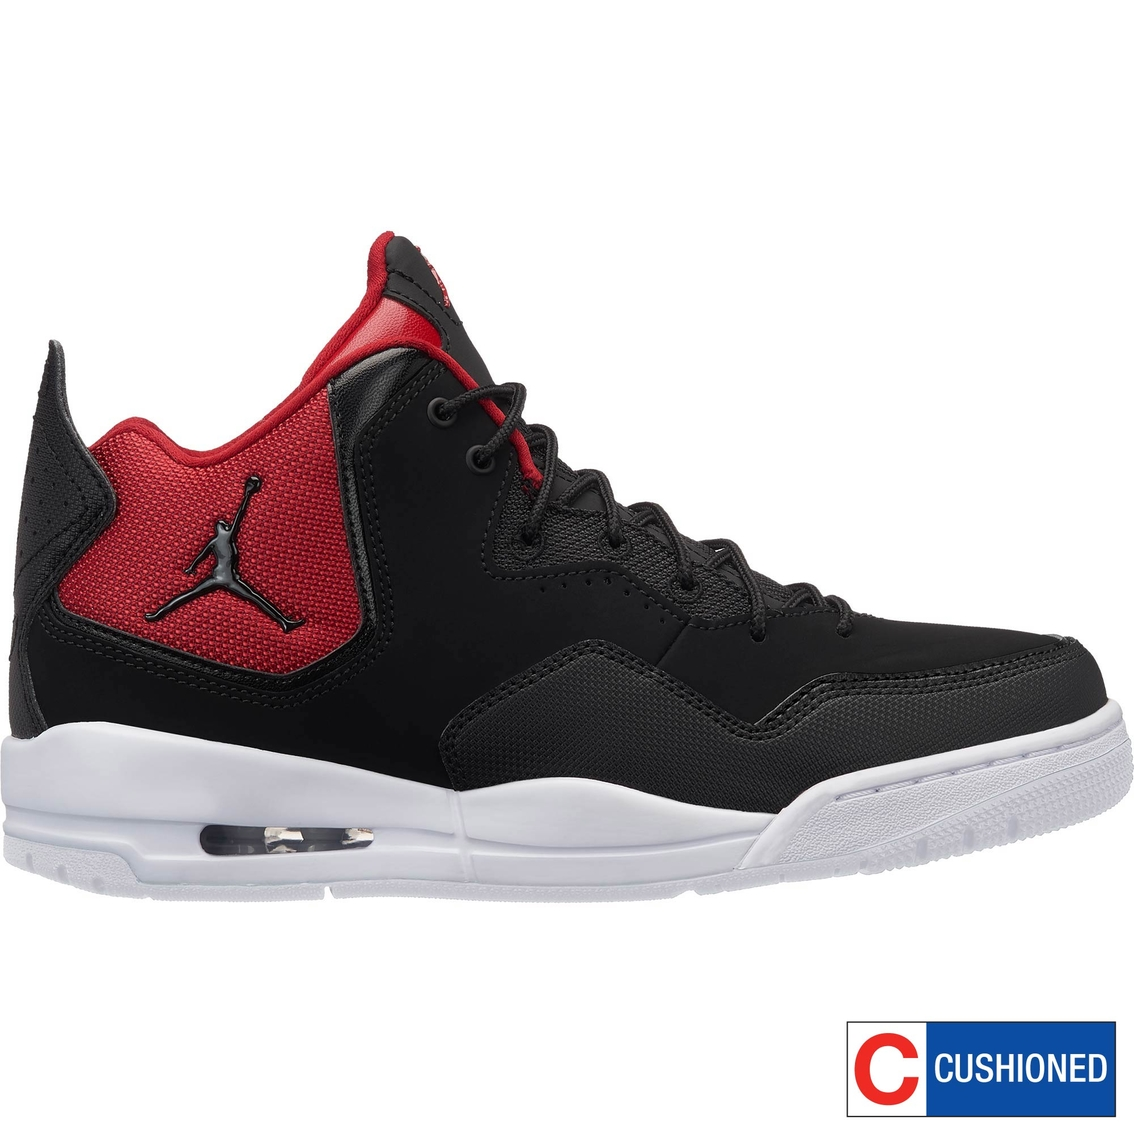 c99a1030153 Jordan Men's Courtside 23 Basketball Shoes | Basketball | Shoes ...